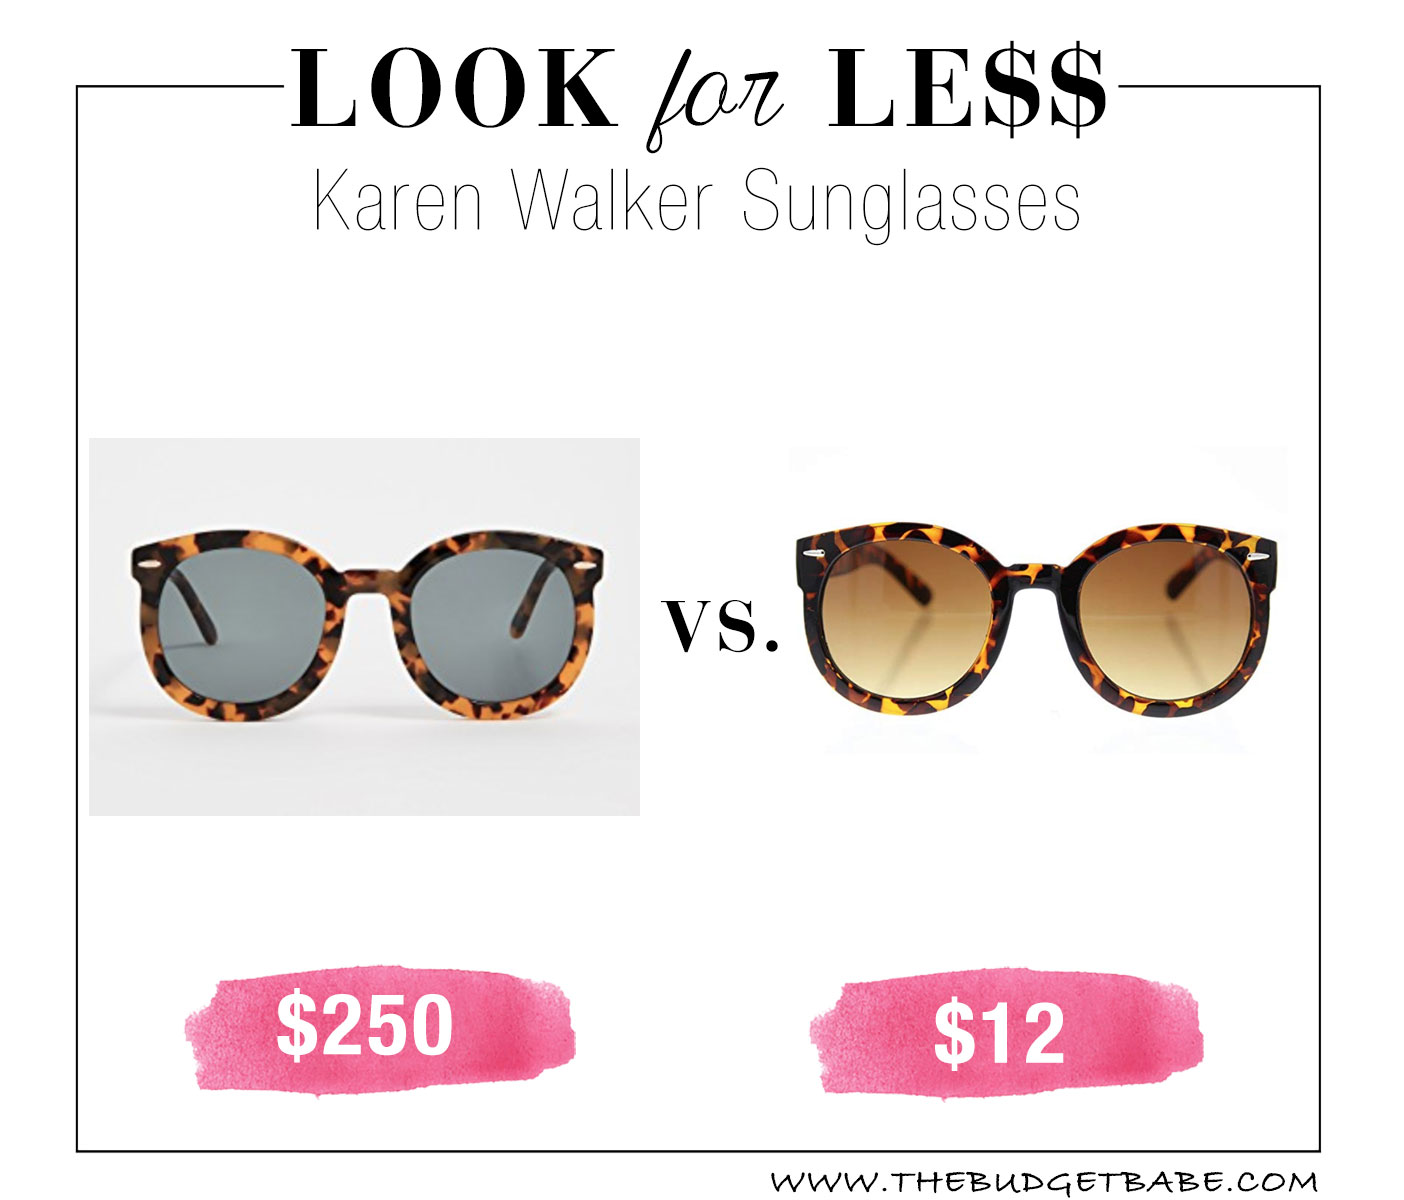 a5736f5fc48 The Look for Less - The Budget Babe | Affordable Fashion & Style Blog